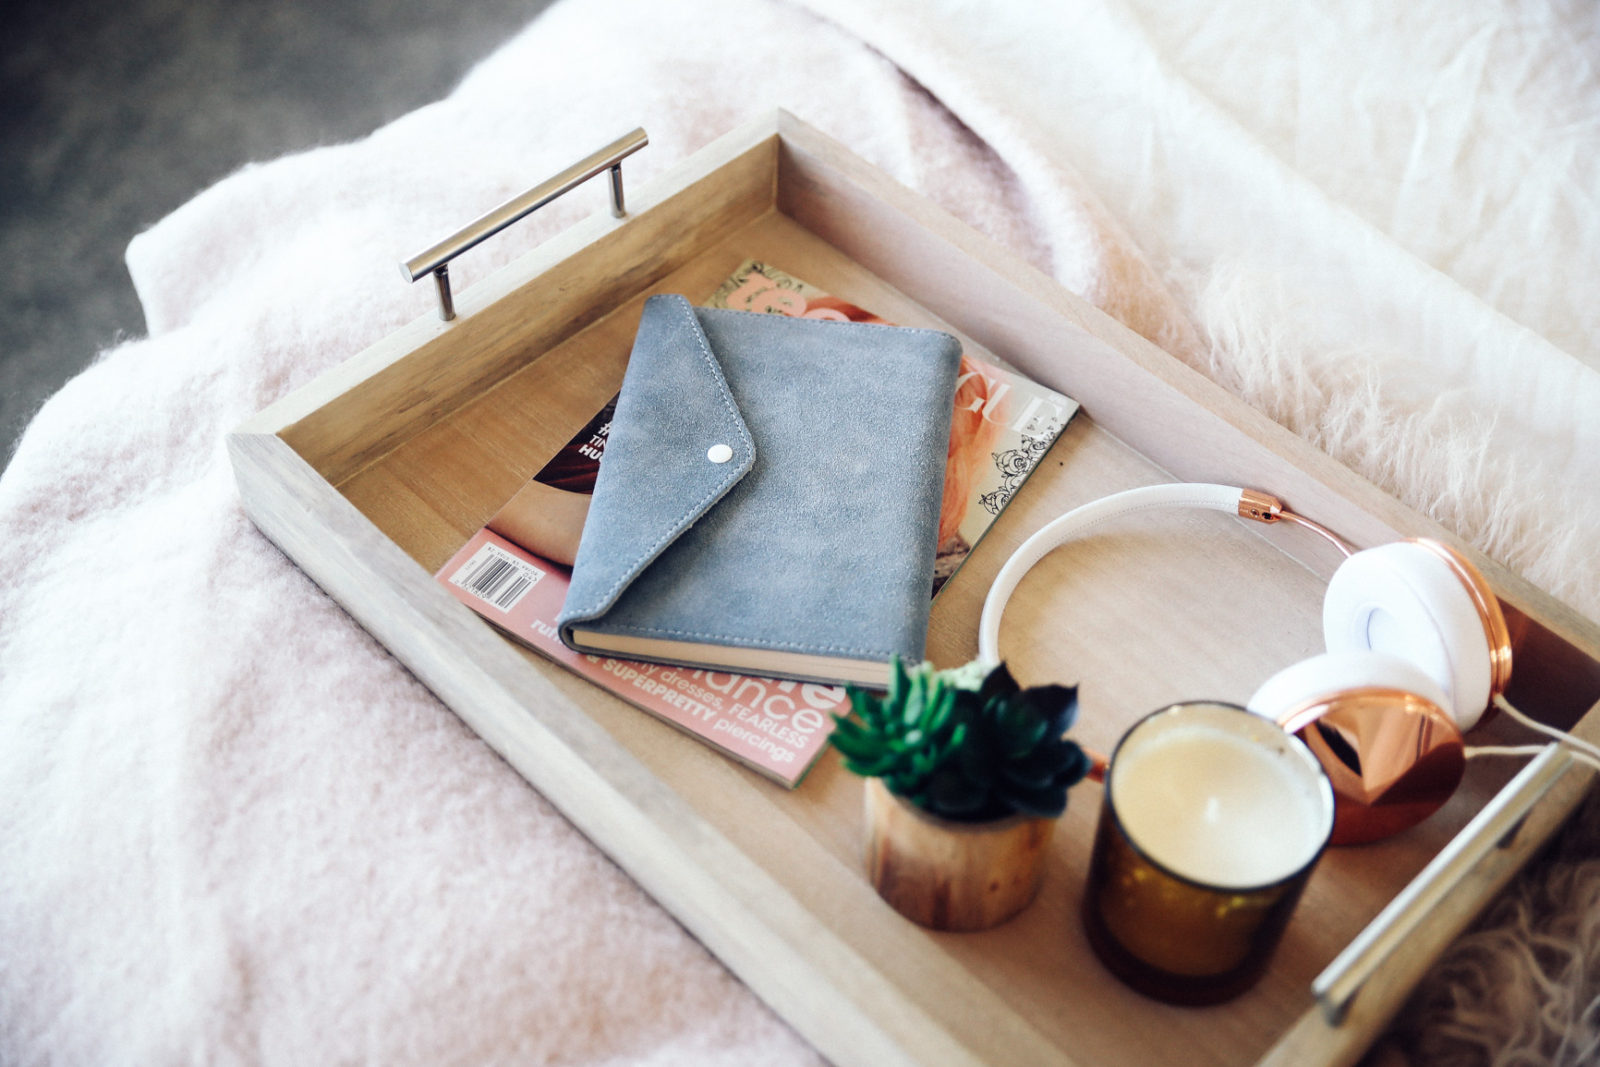 urban-outfitters-fall-winter-room-decor-makeover-ideas-31